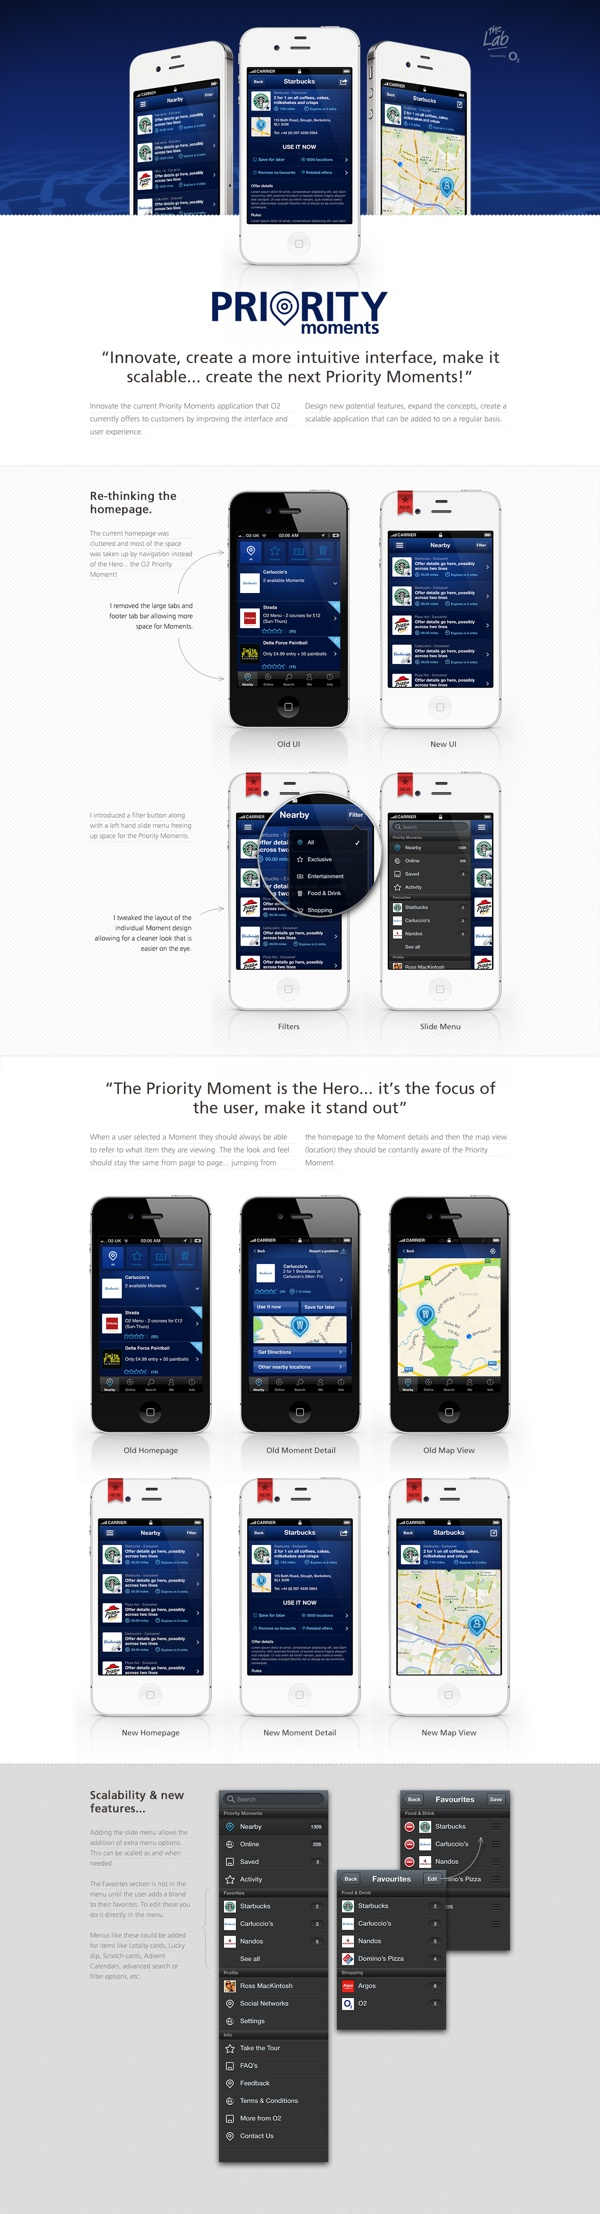 O2 Priority Moments. Proof of concept. by Ross MacKintosh, via Behance